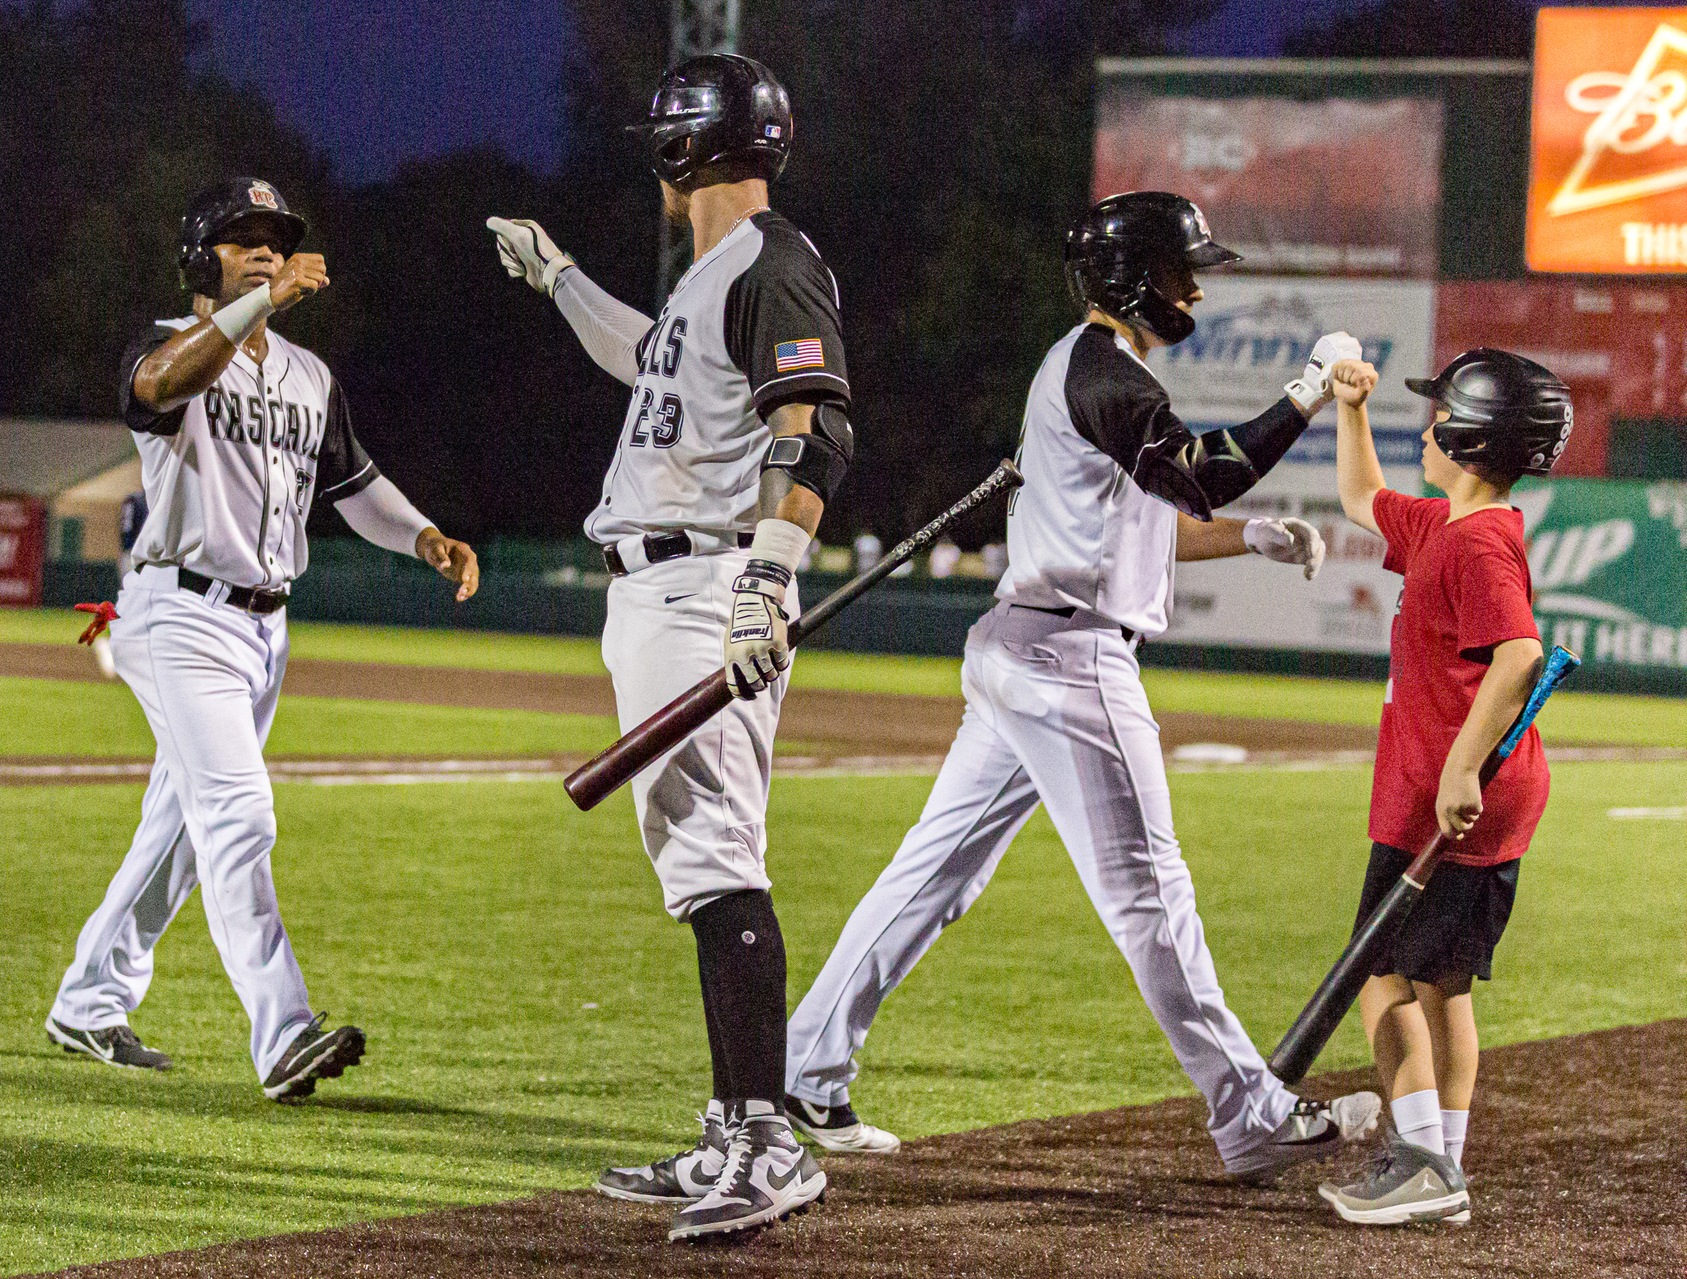 Rascals Blast Otters in Playoff Opener